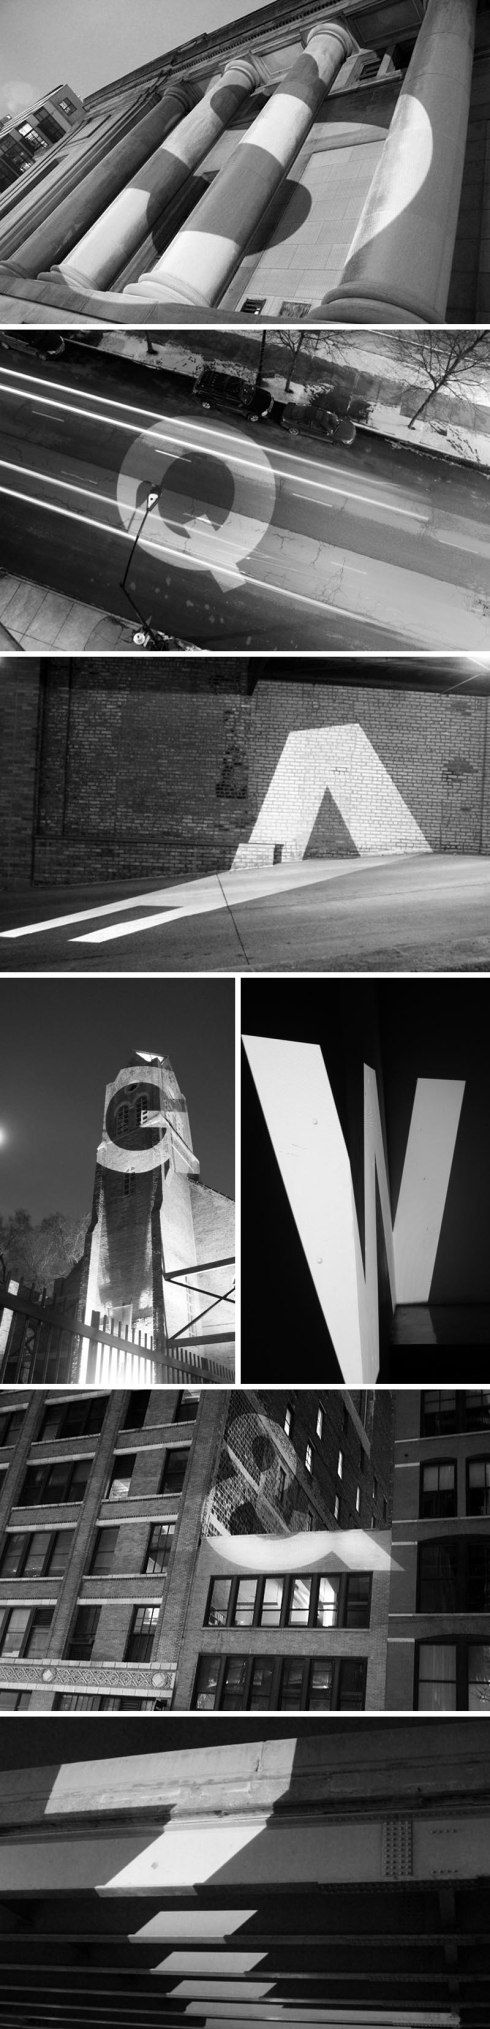 Letters At Large By Audra Hubbell Large Projections Of Letters With Cool Effects Against Architecture